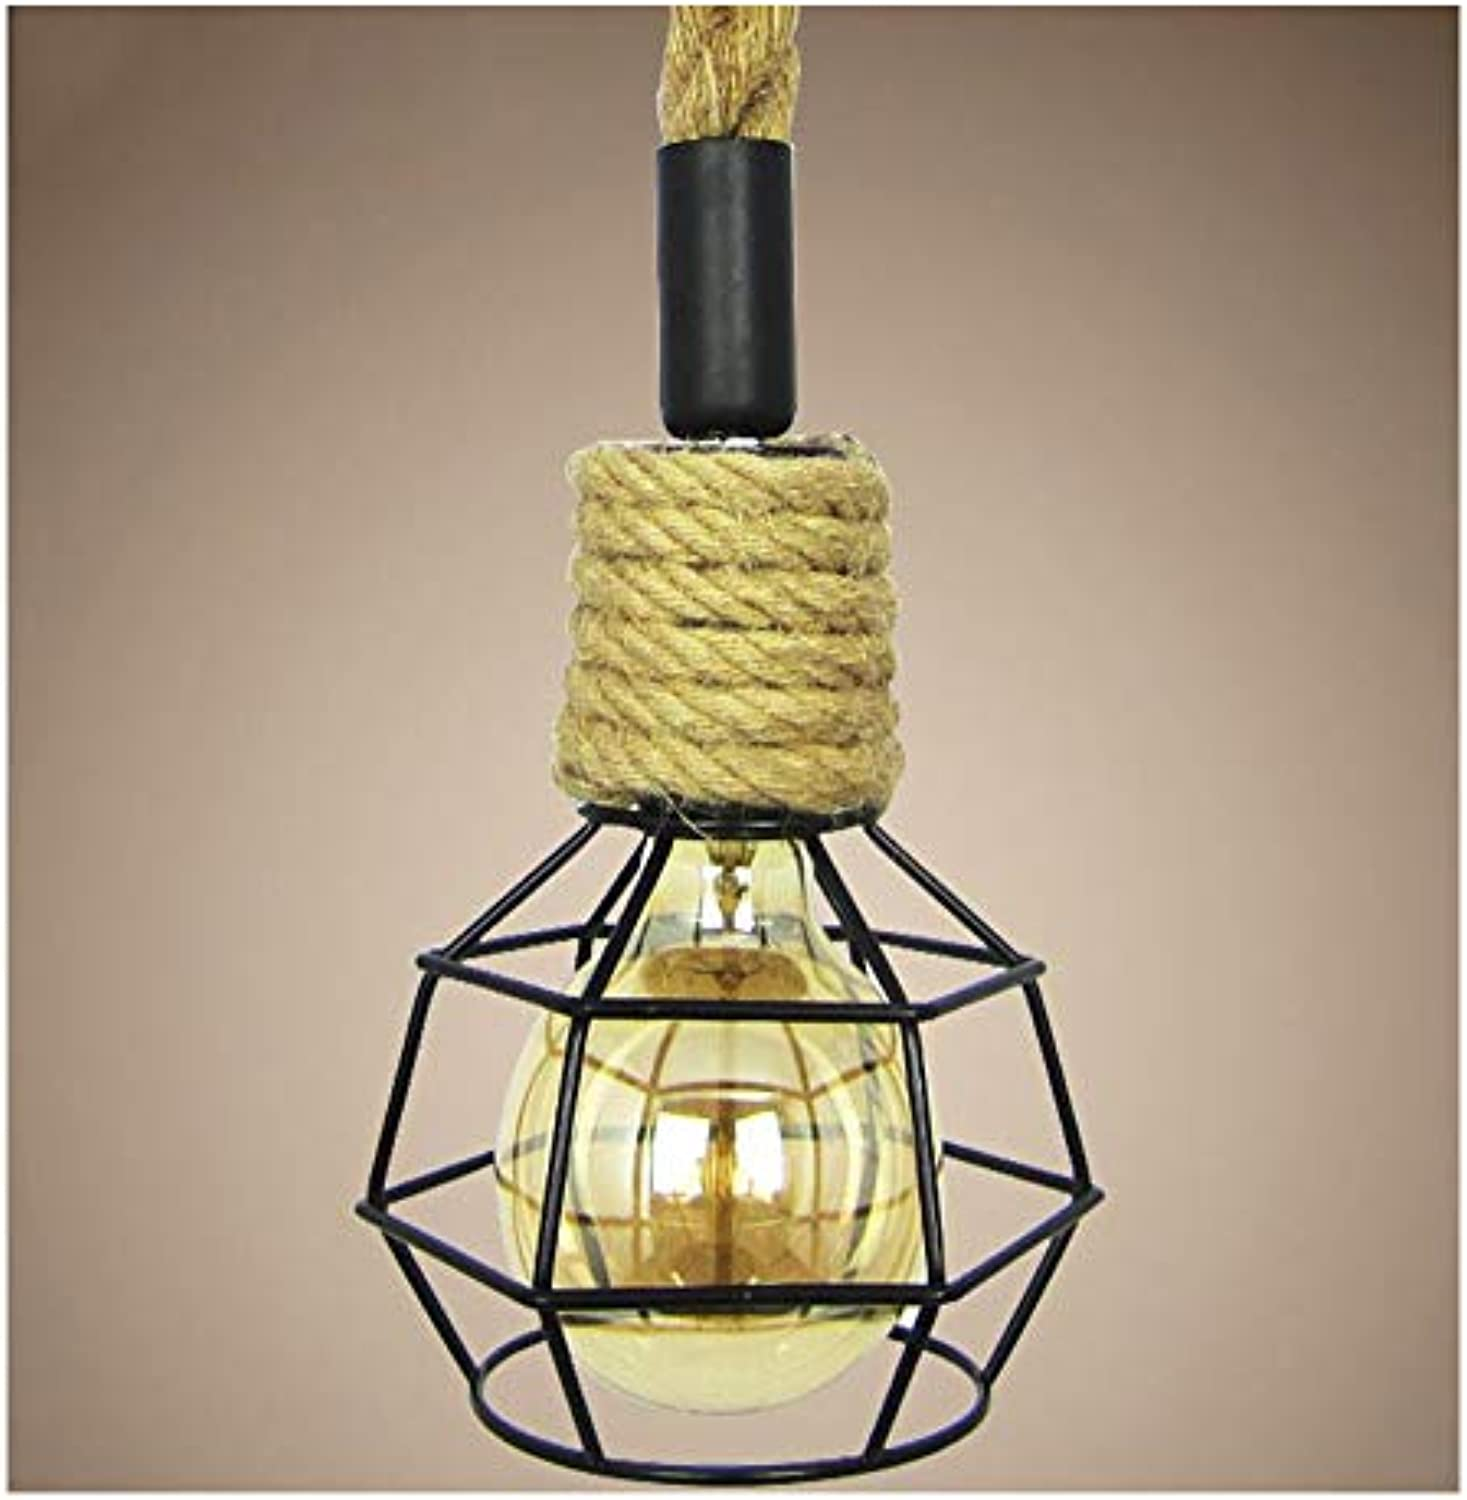 Retro Industry Hanf Rope Chandelier-Irons Bird Cage Creative Pendant Light for Bedroom Restaurant Club Cafe Hotel Decoration Lights